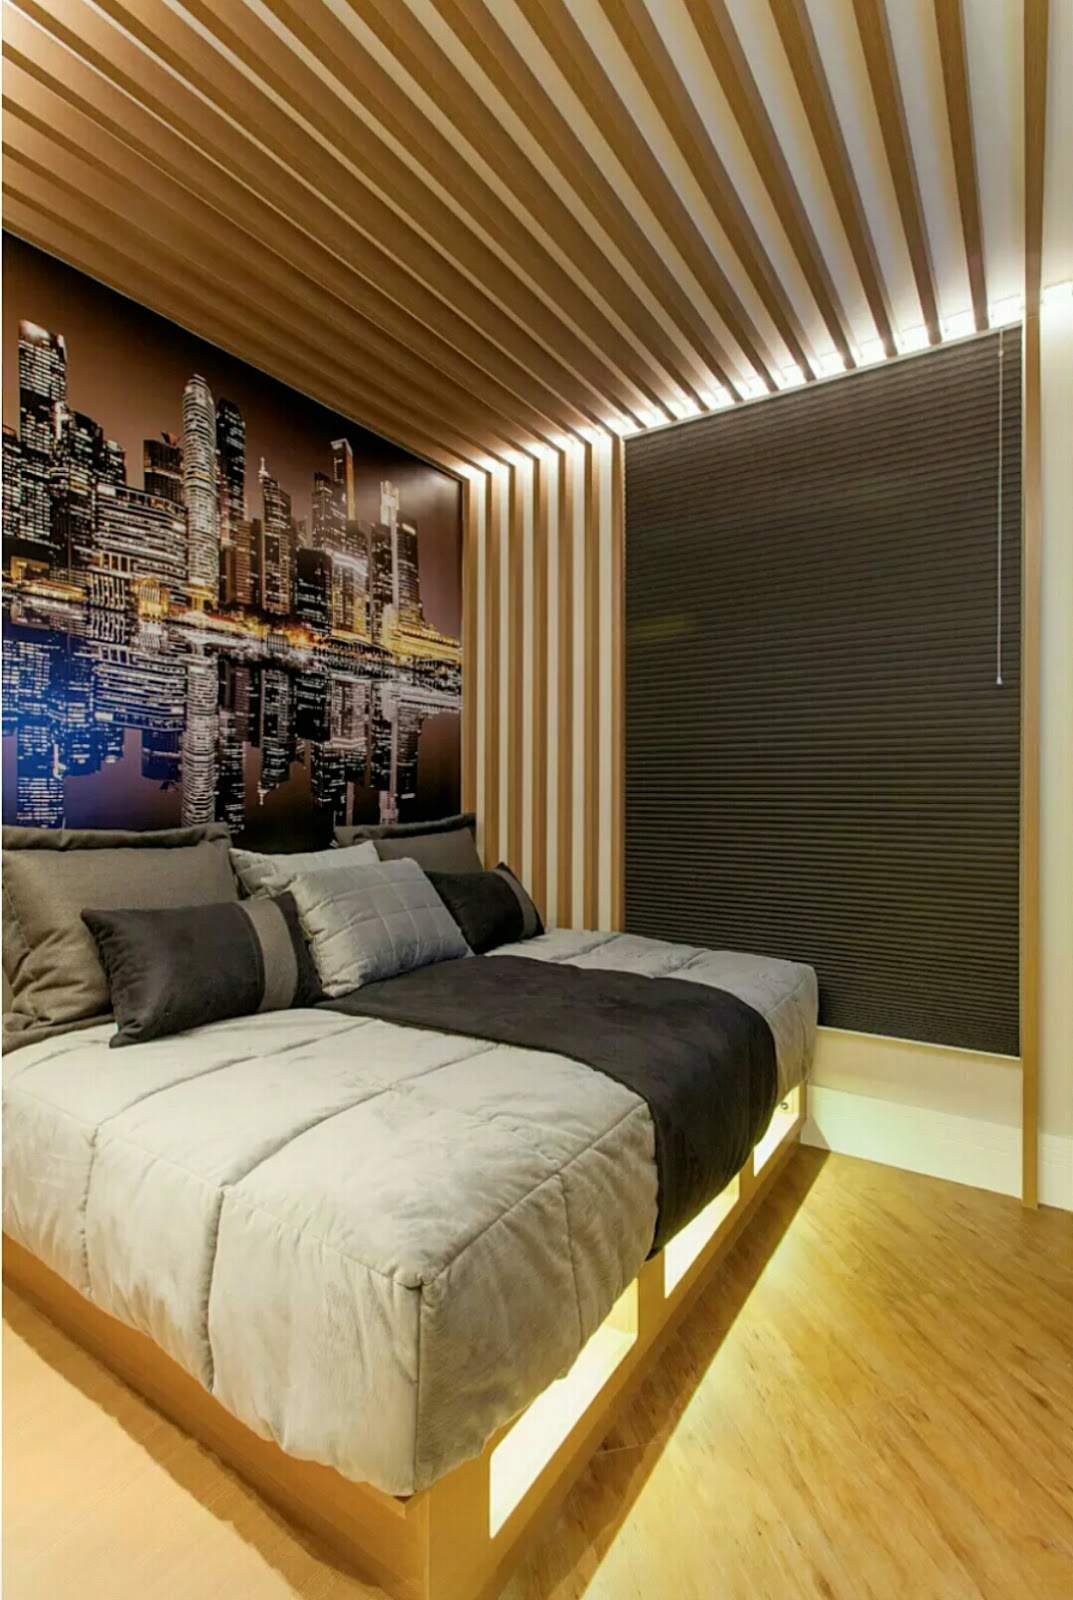 If you're planning to decorate your bedroom but you don't have any design idea and you don't know how to start. Here is some inspirational interiors design ideas to make awesome your bedroom. Check more fantastic design on below images.